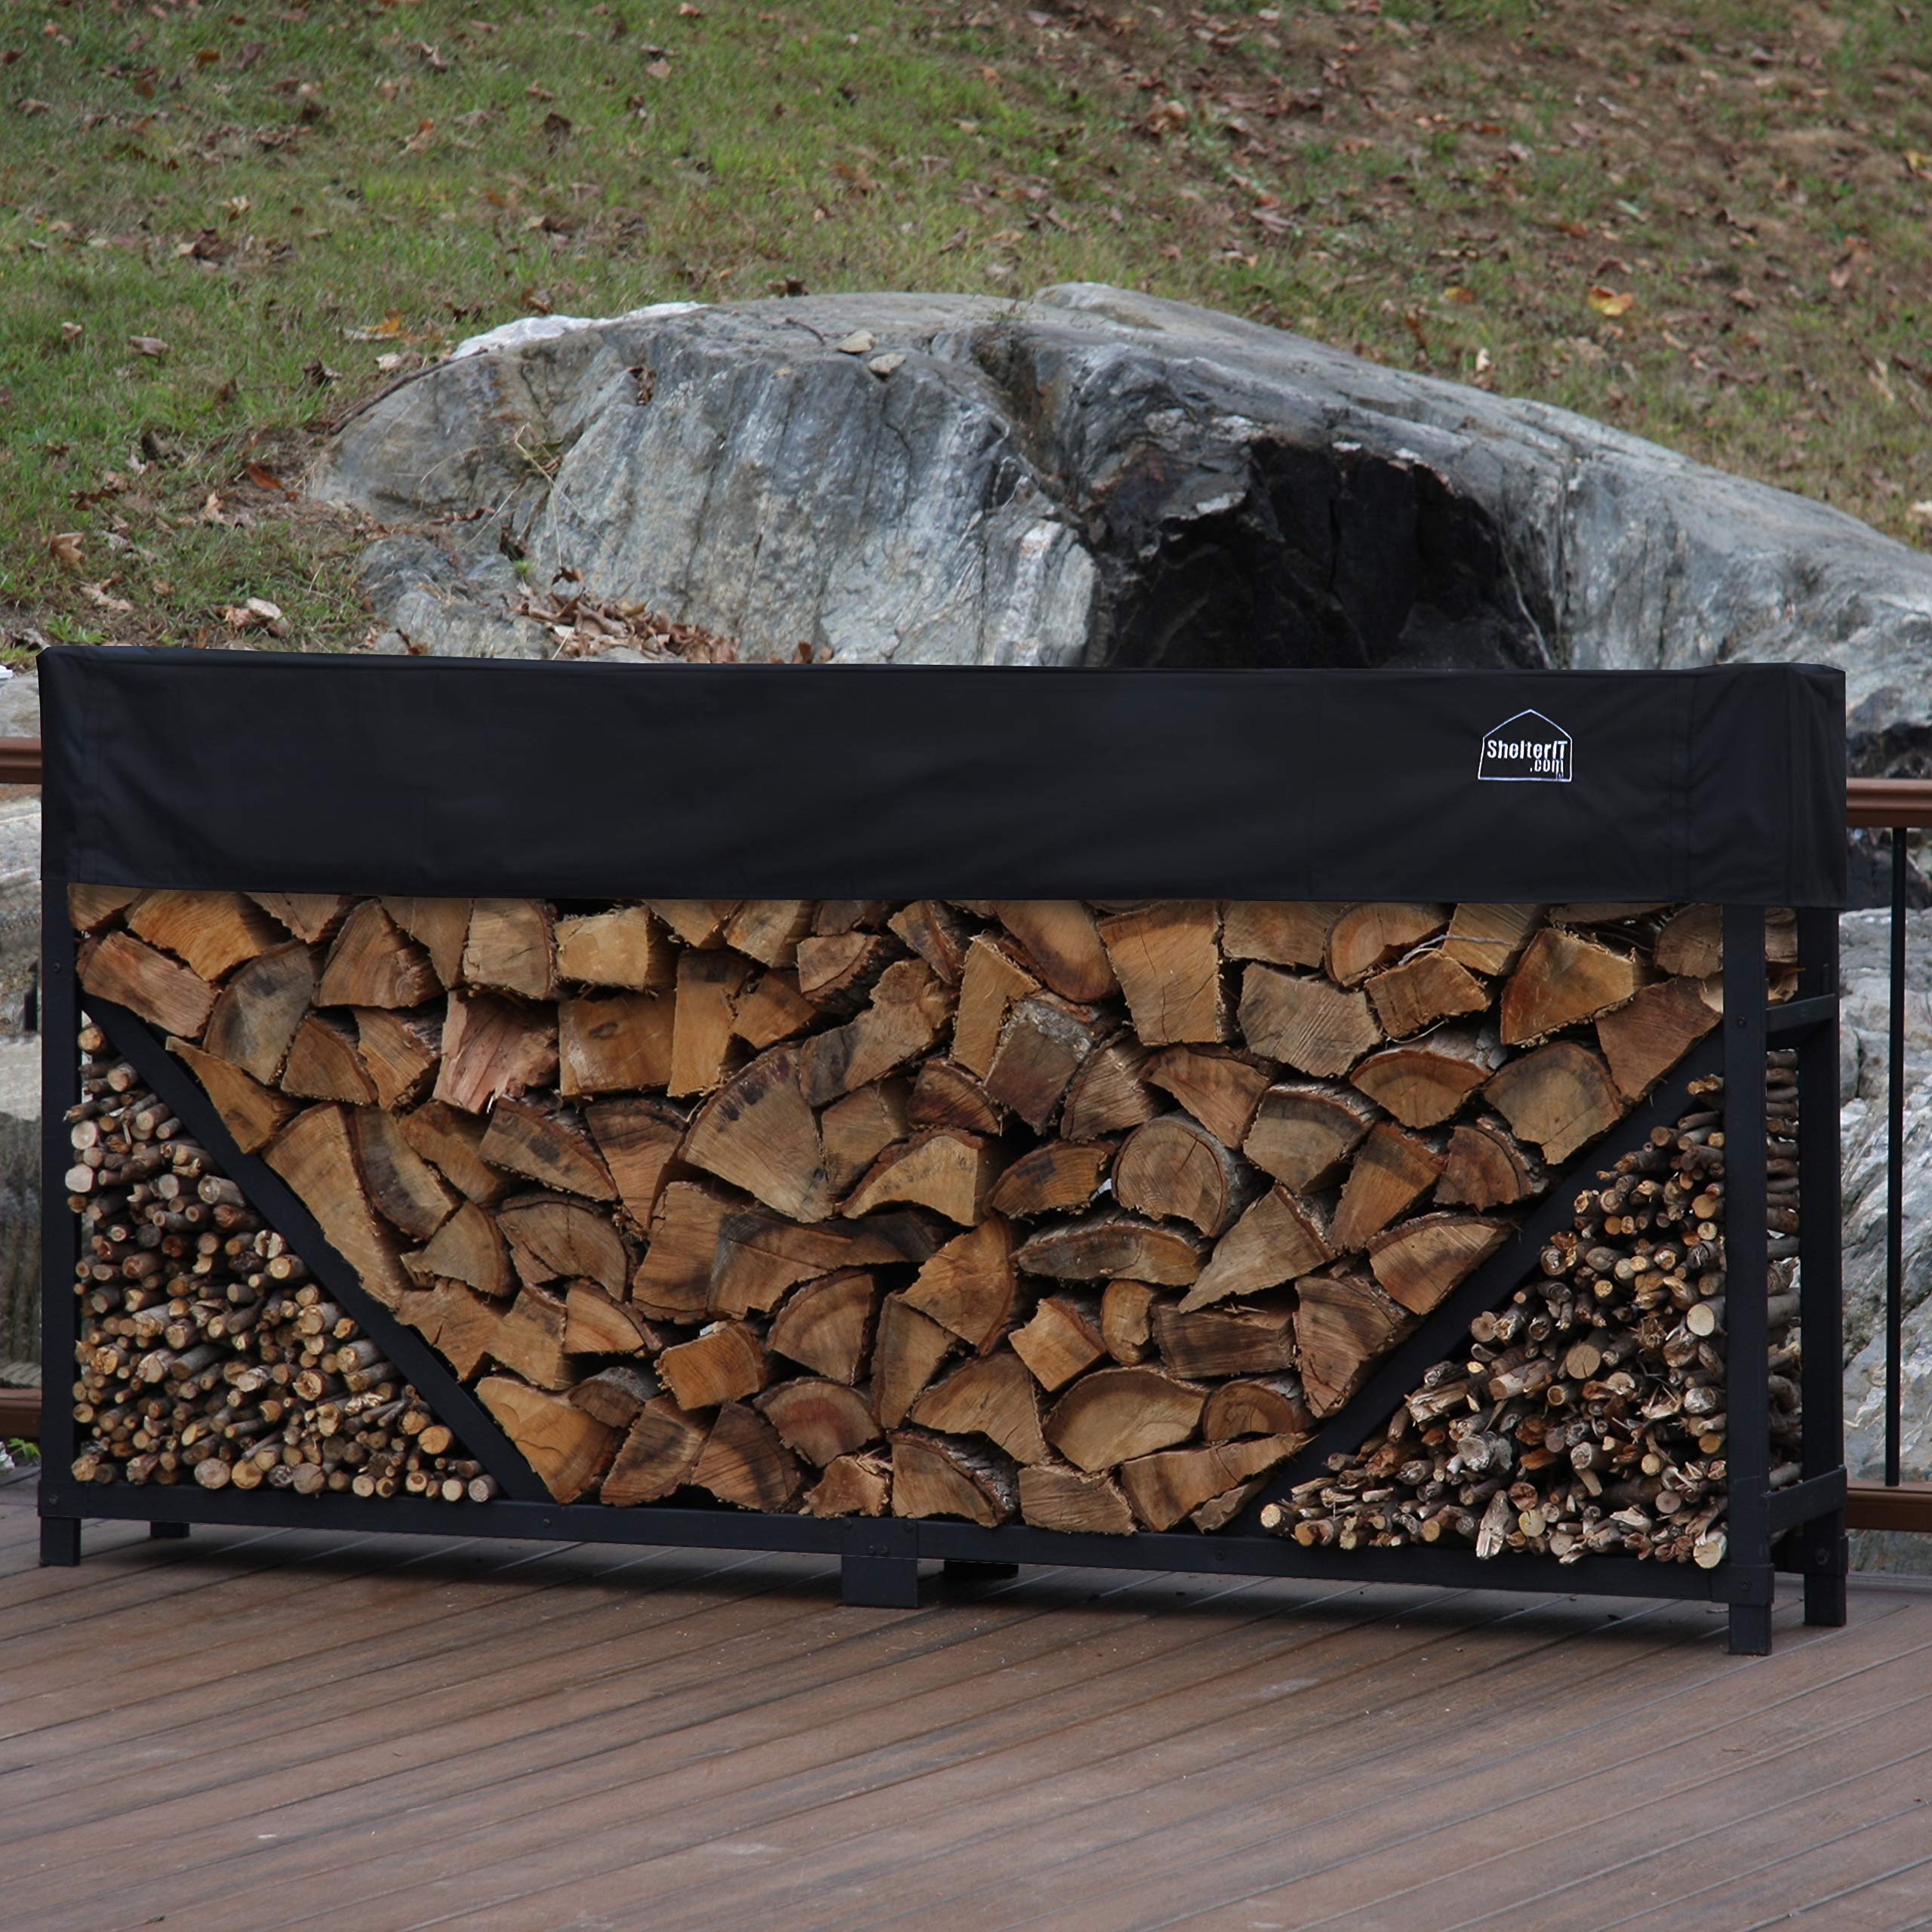 Shelter It 23808 Straight Kindling Kit and 1' Cover Log Rack, 8', Black by Shelter It